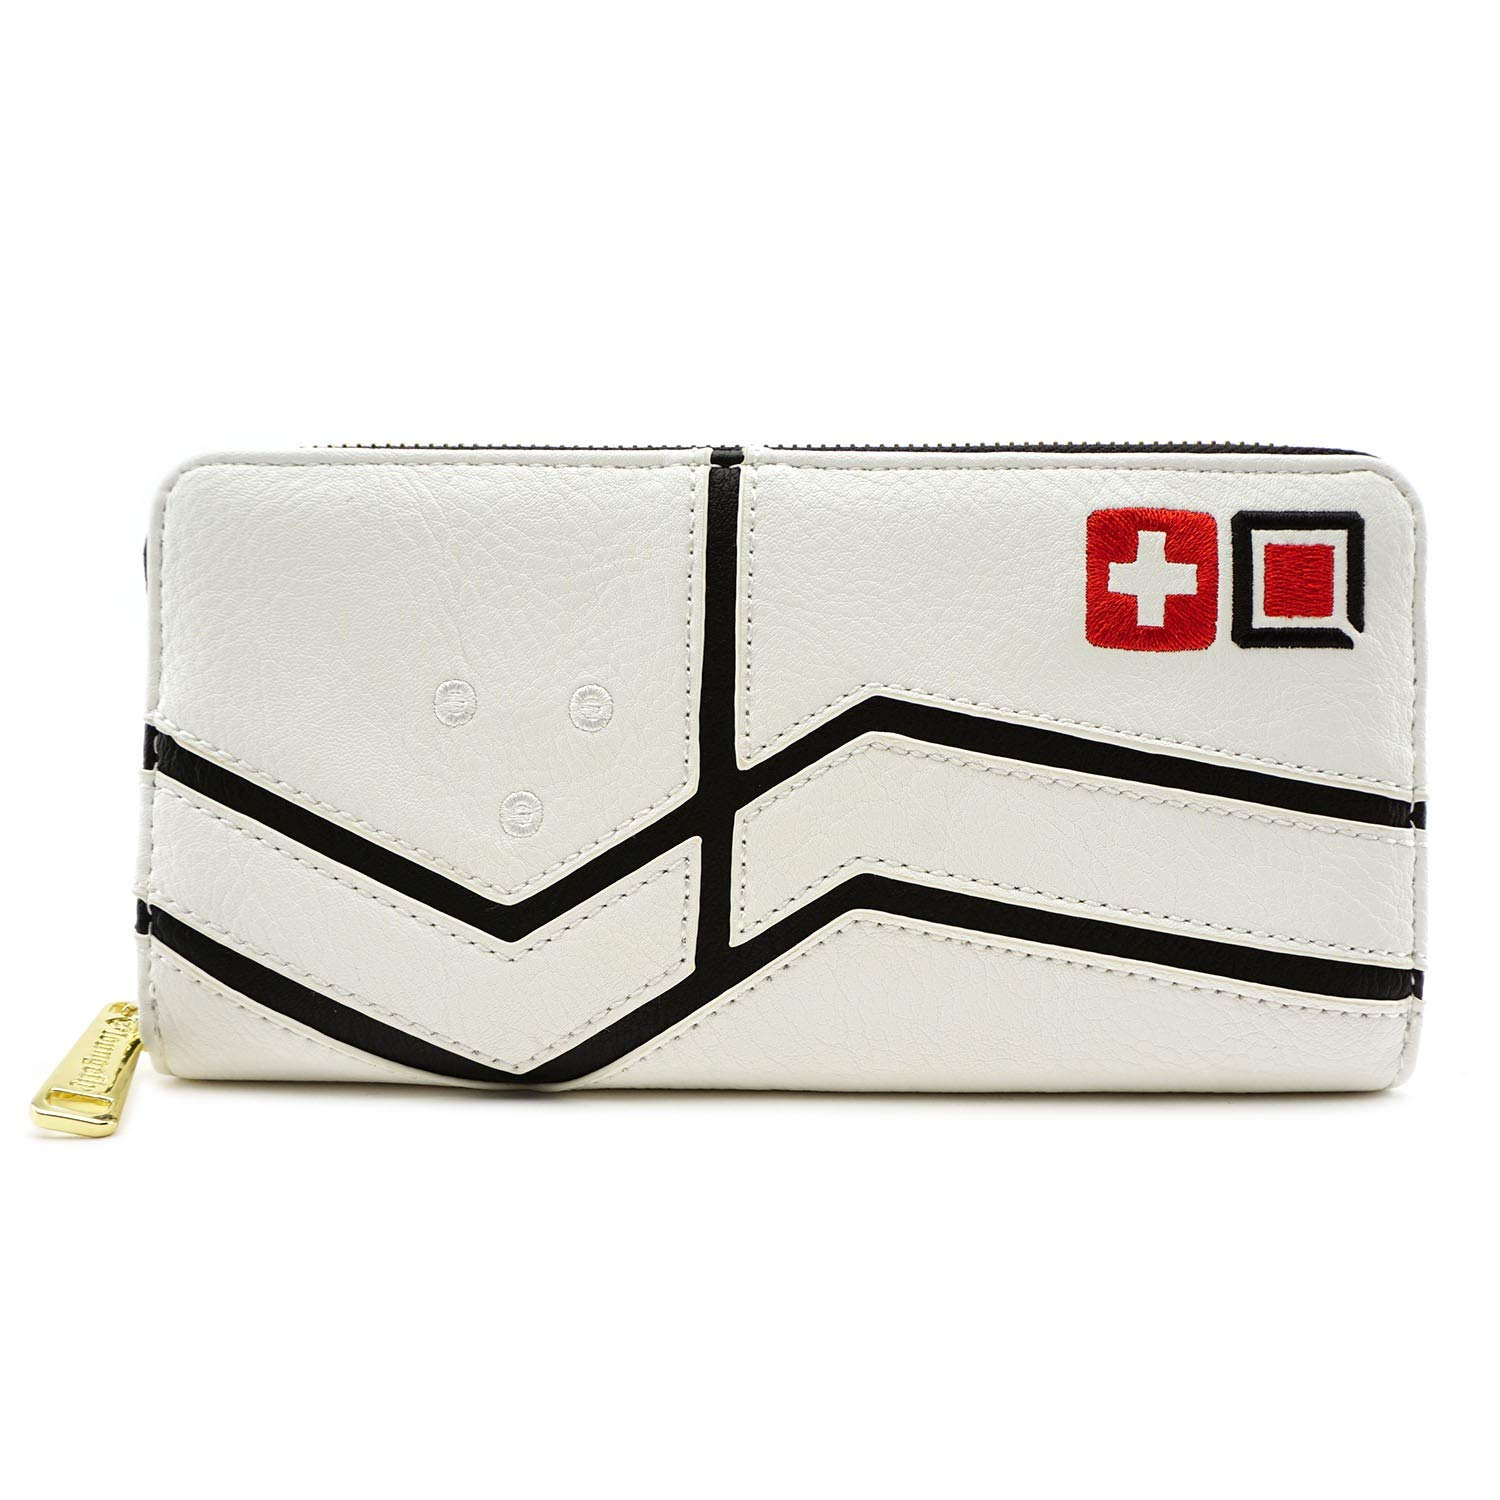 Loungefly Overwatch Mercy Faux Leather Zip around Wallet,Black,cream,Standard by Loungefly (Image #1)